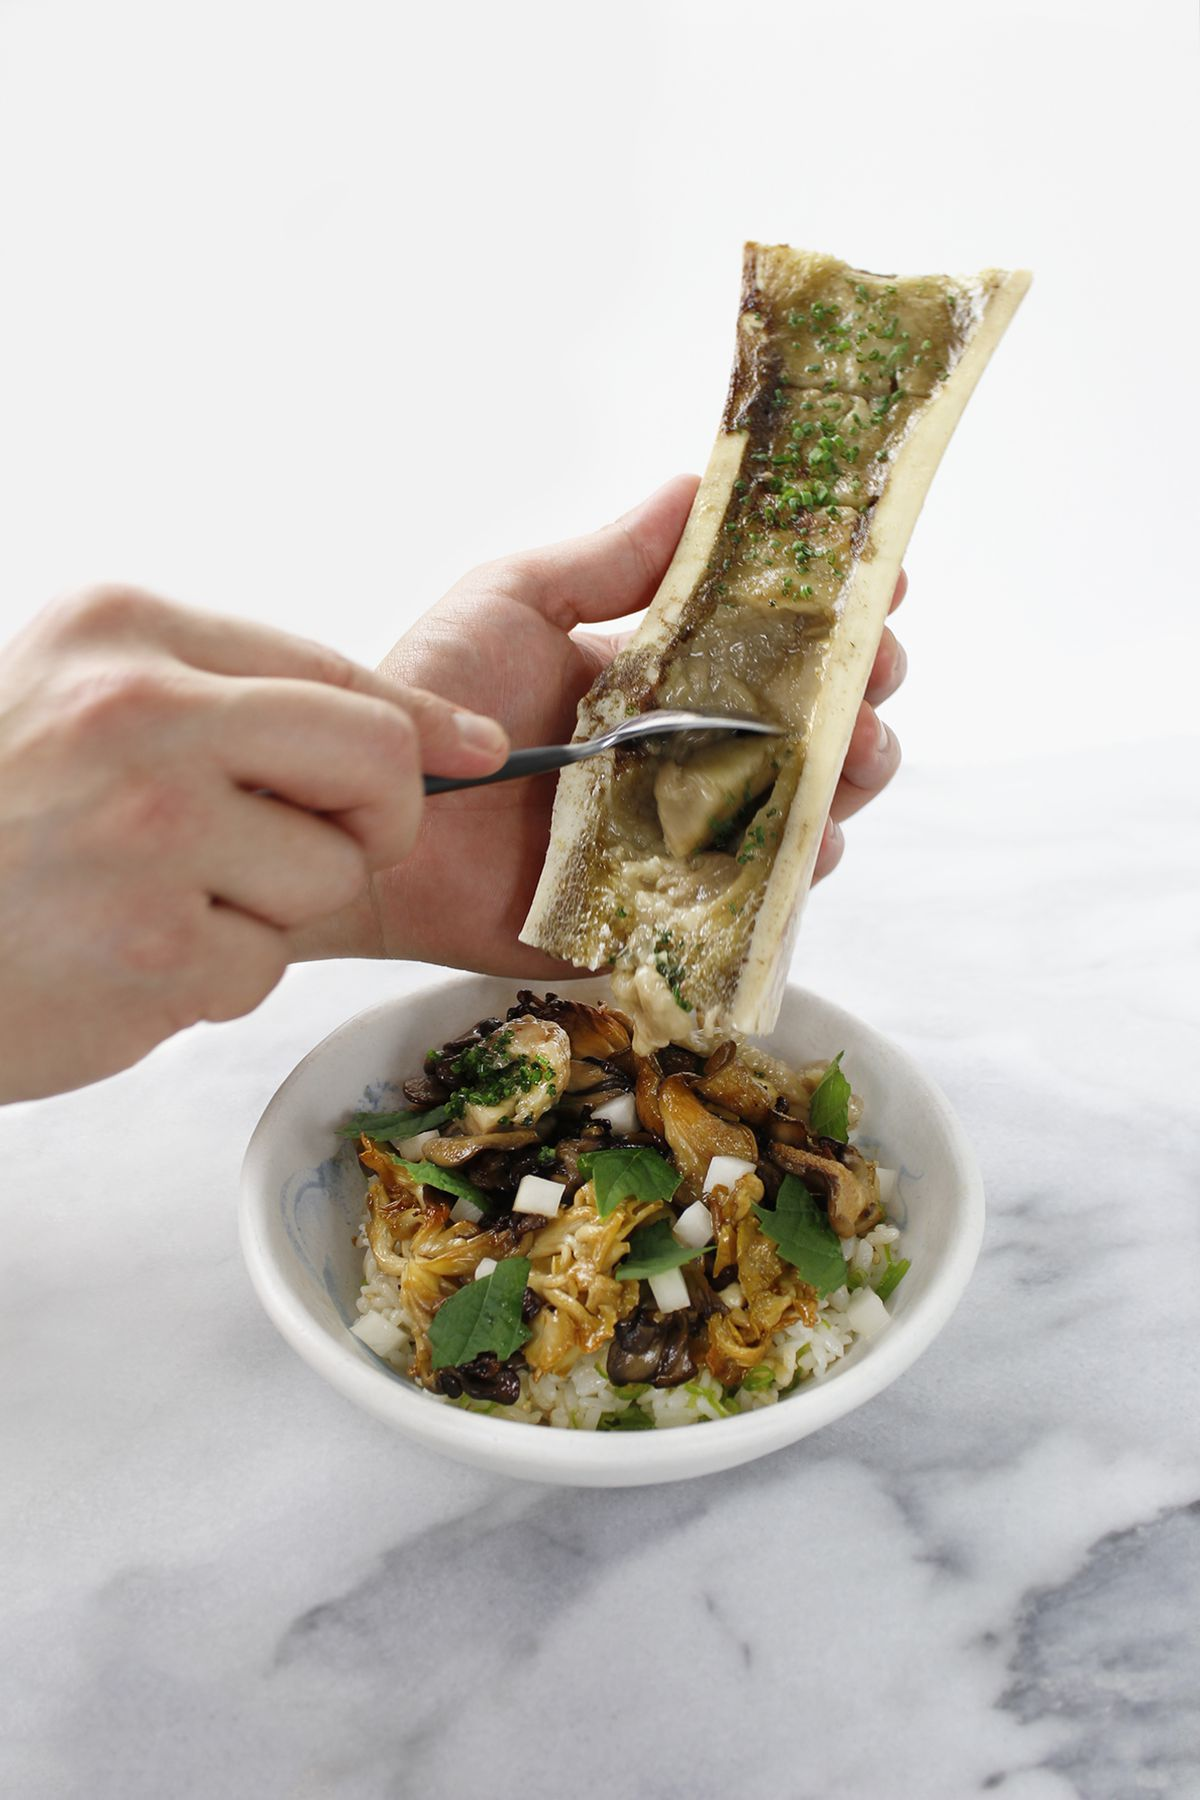 Two hands holding a white piece of bone scrape marrow with a spoon into a white bowl filled with rice and vegetables